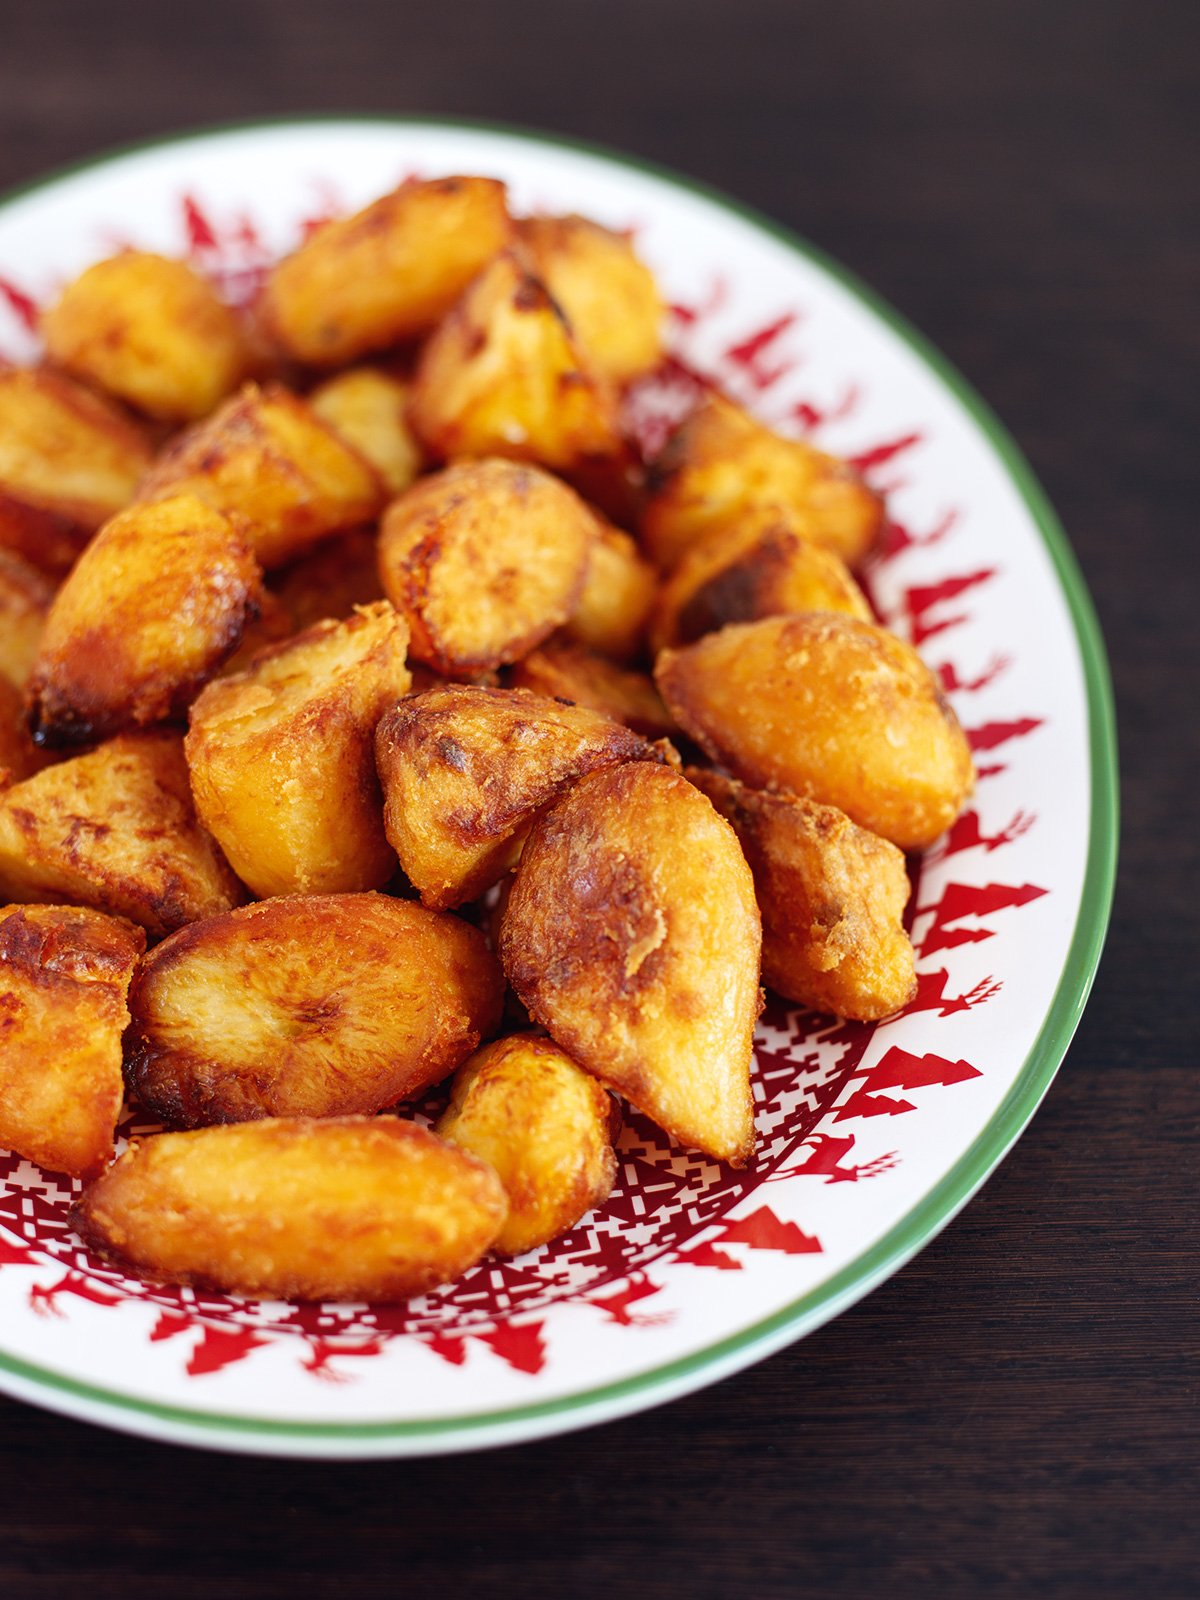 Fried kipfler potato recipes